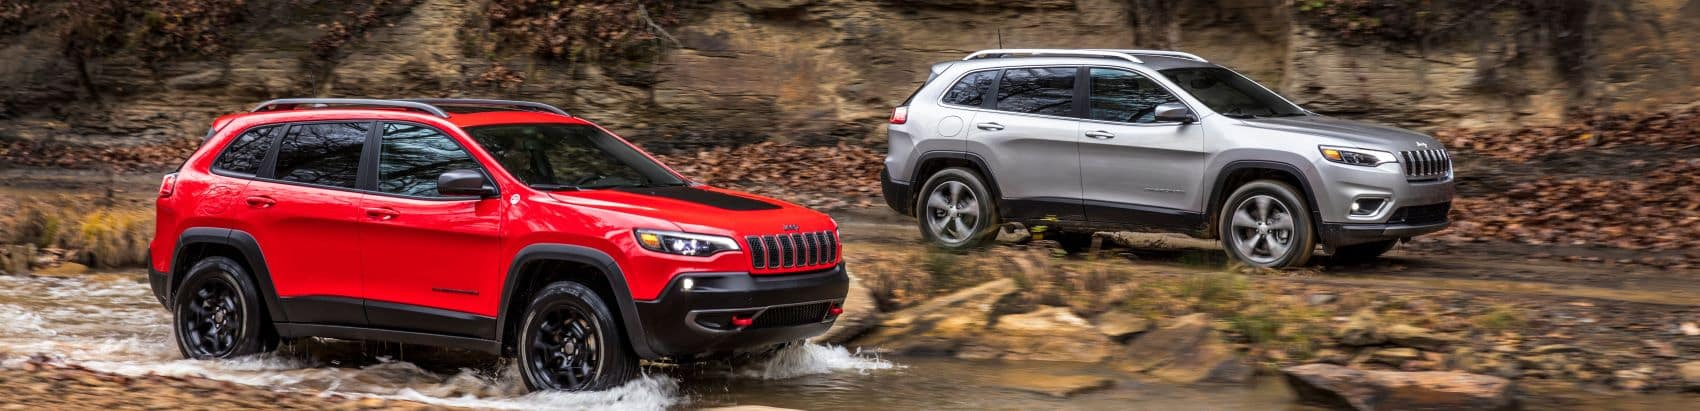 Two Jeep Cherokees off-roading